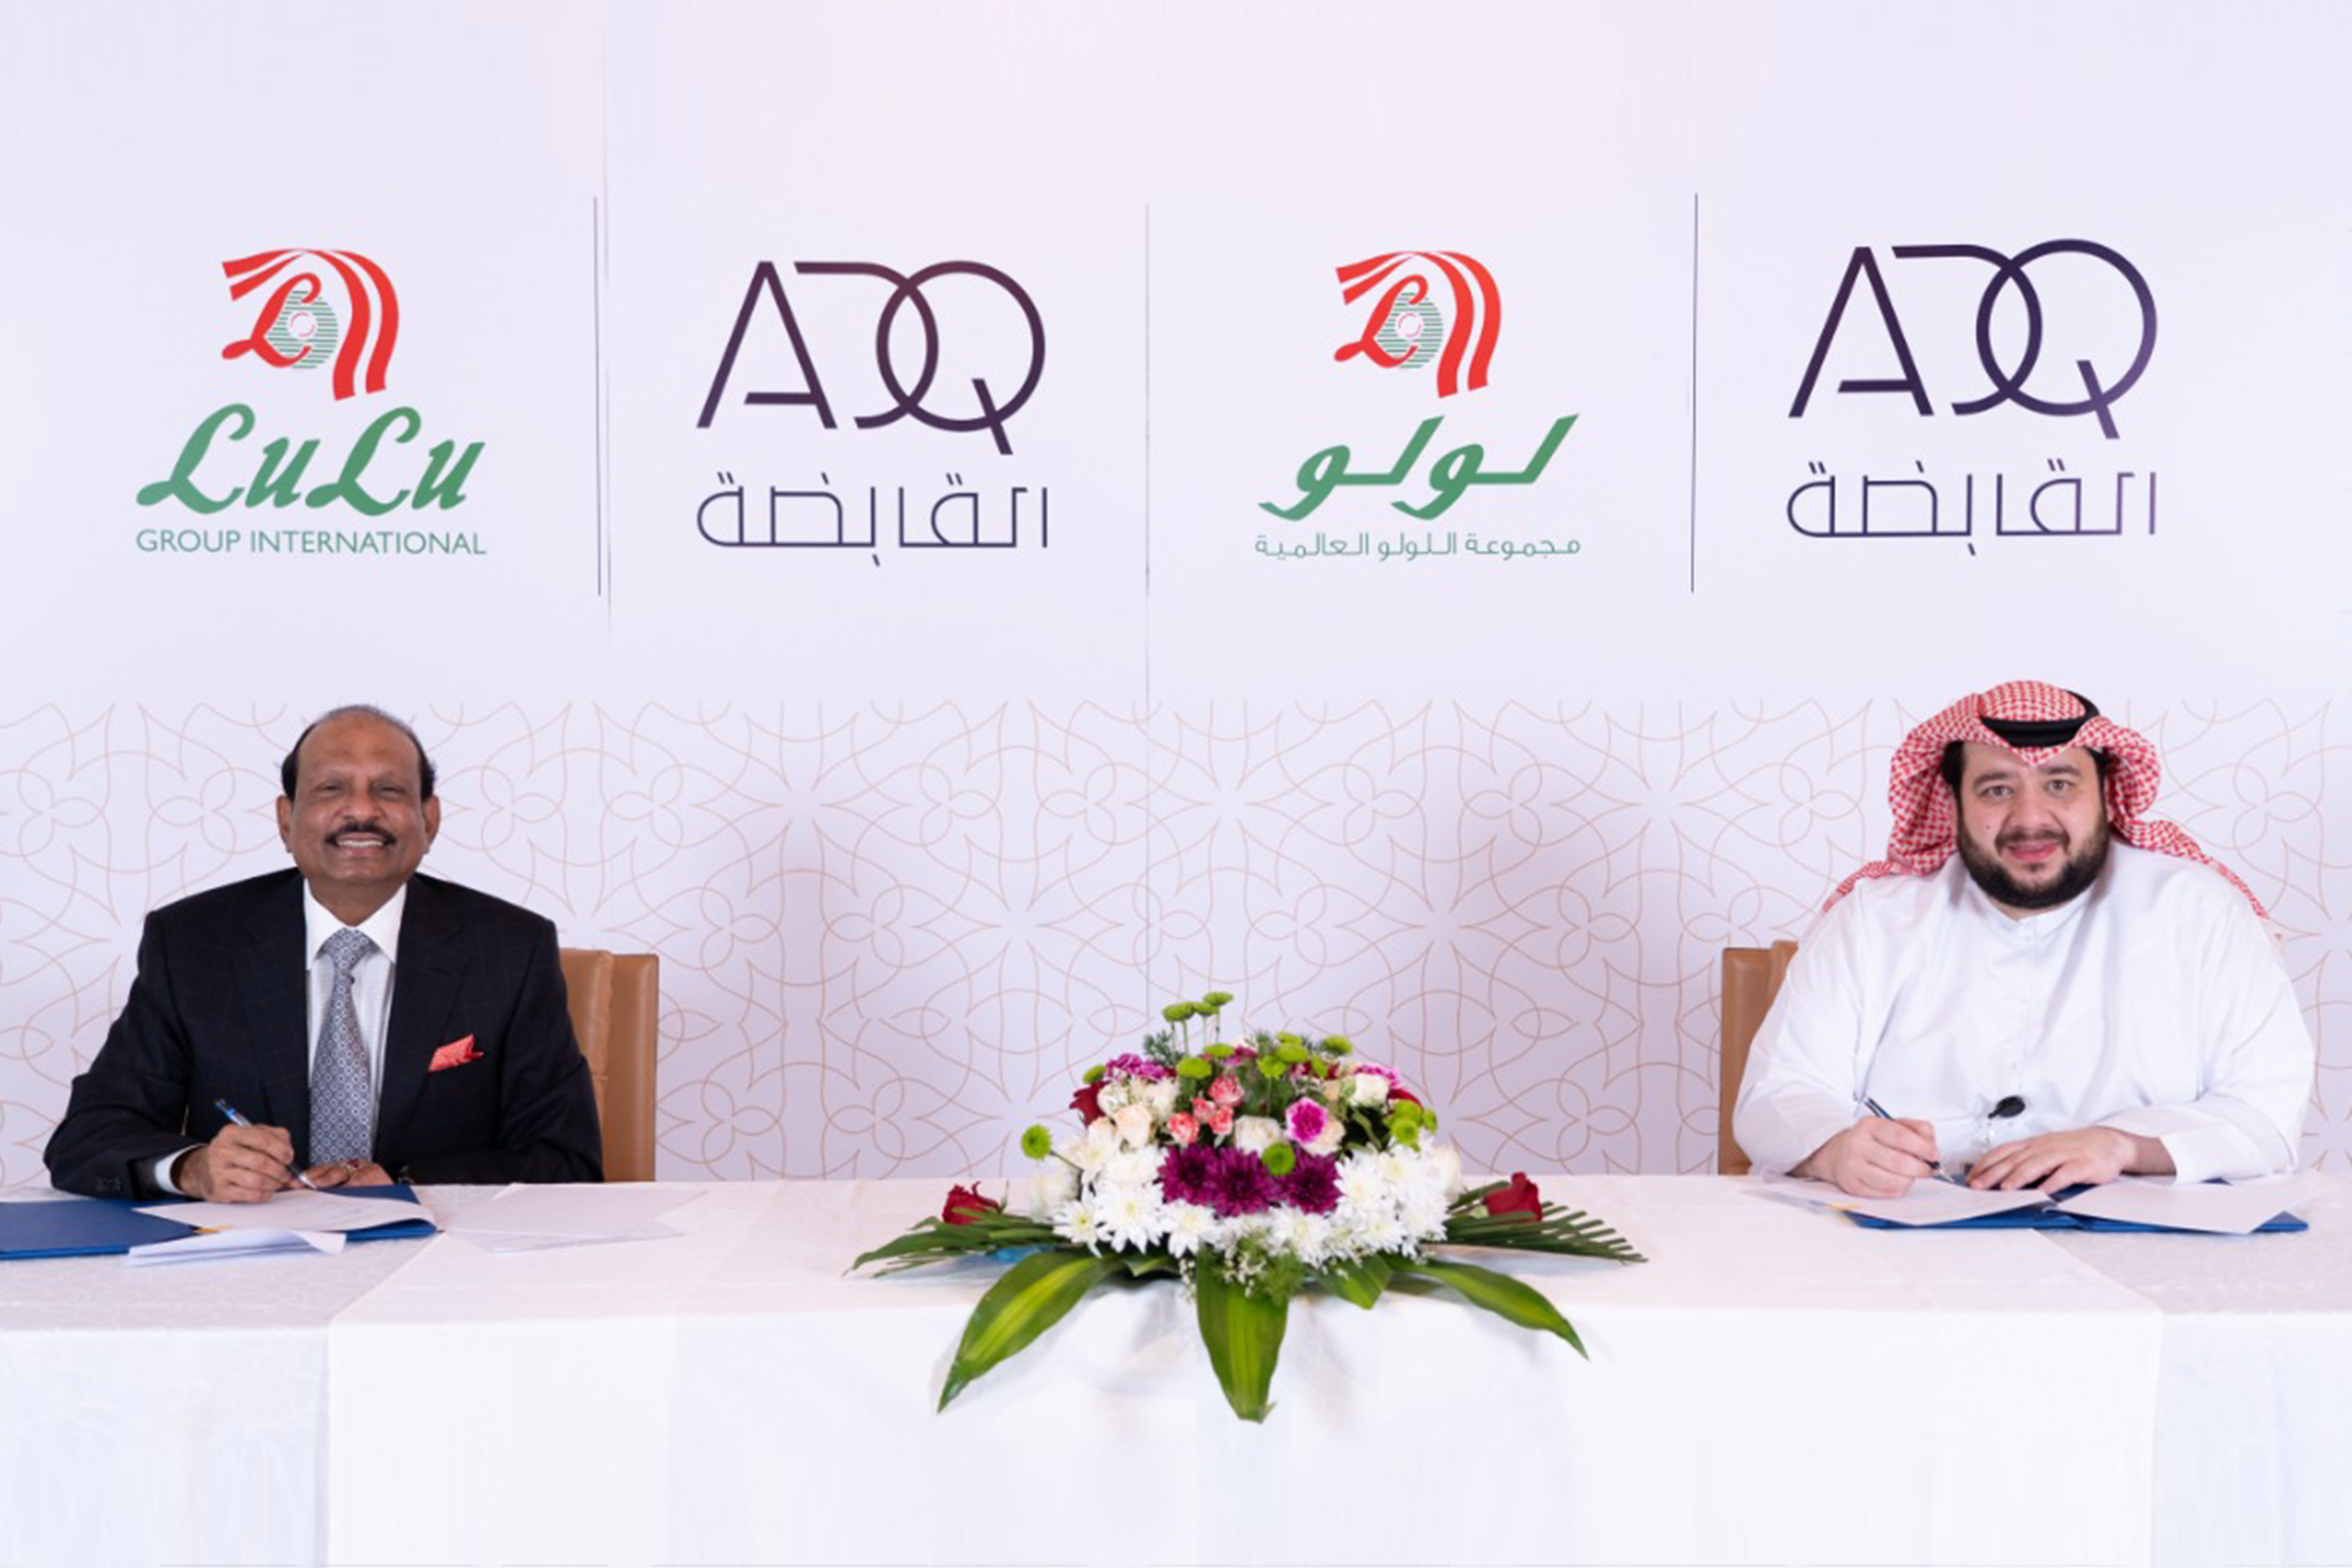 ADQ to invest US$ 1 billion in Lulu Group for Expanding in Egypt